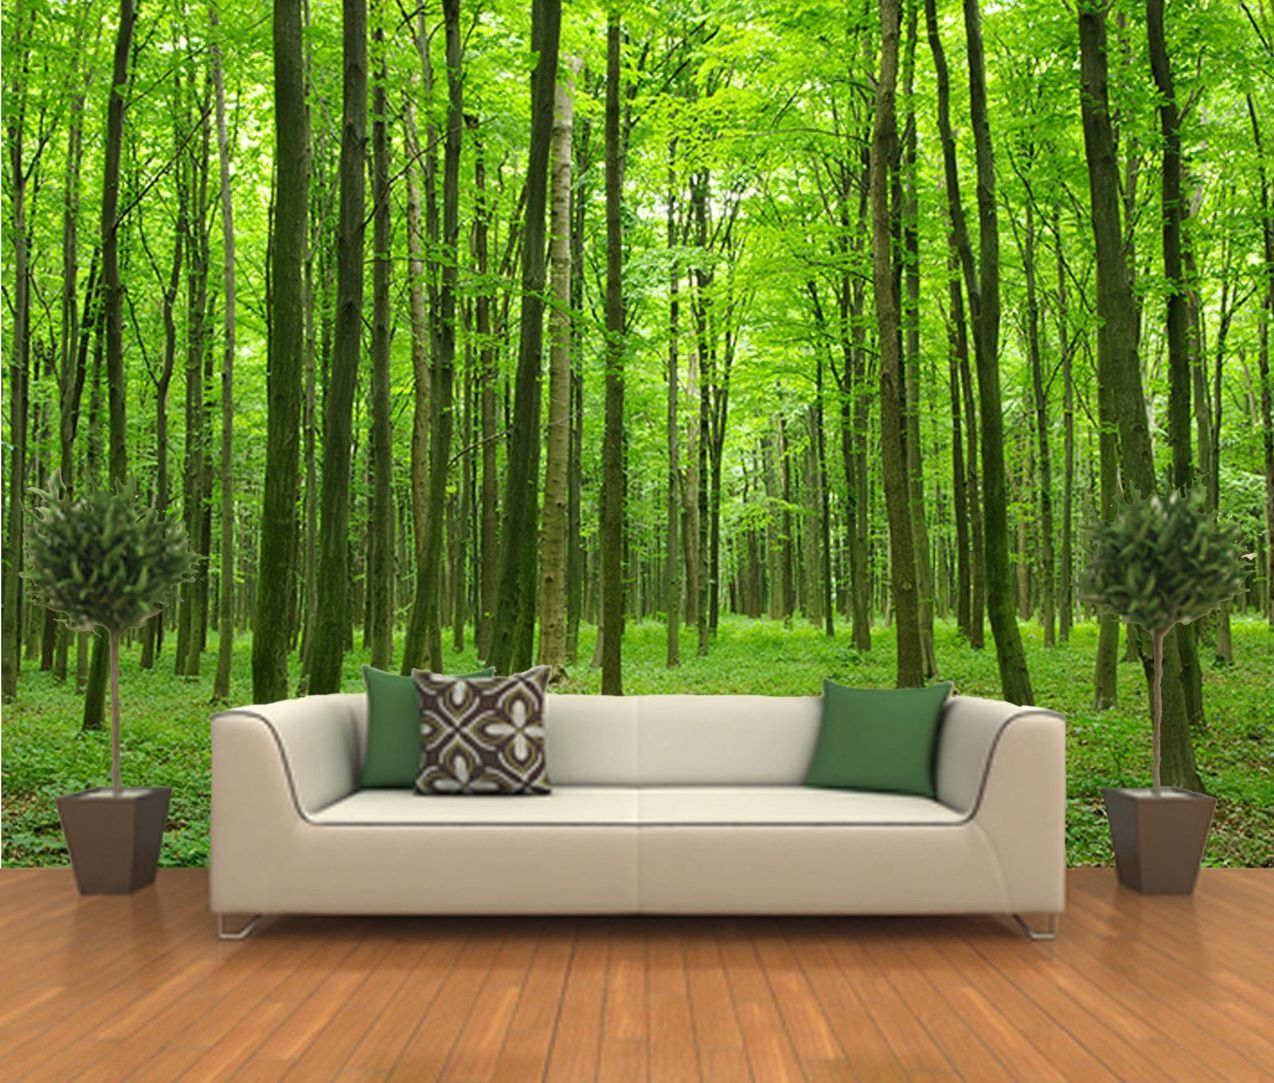 Peel and stick photo wall mural decor wallpapers forest for Mural wallpaper